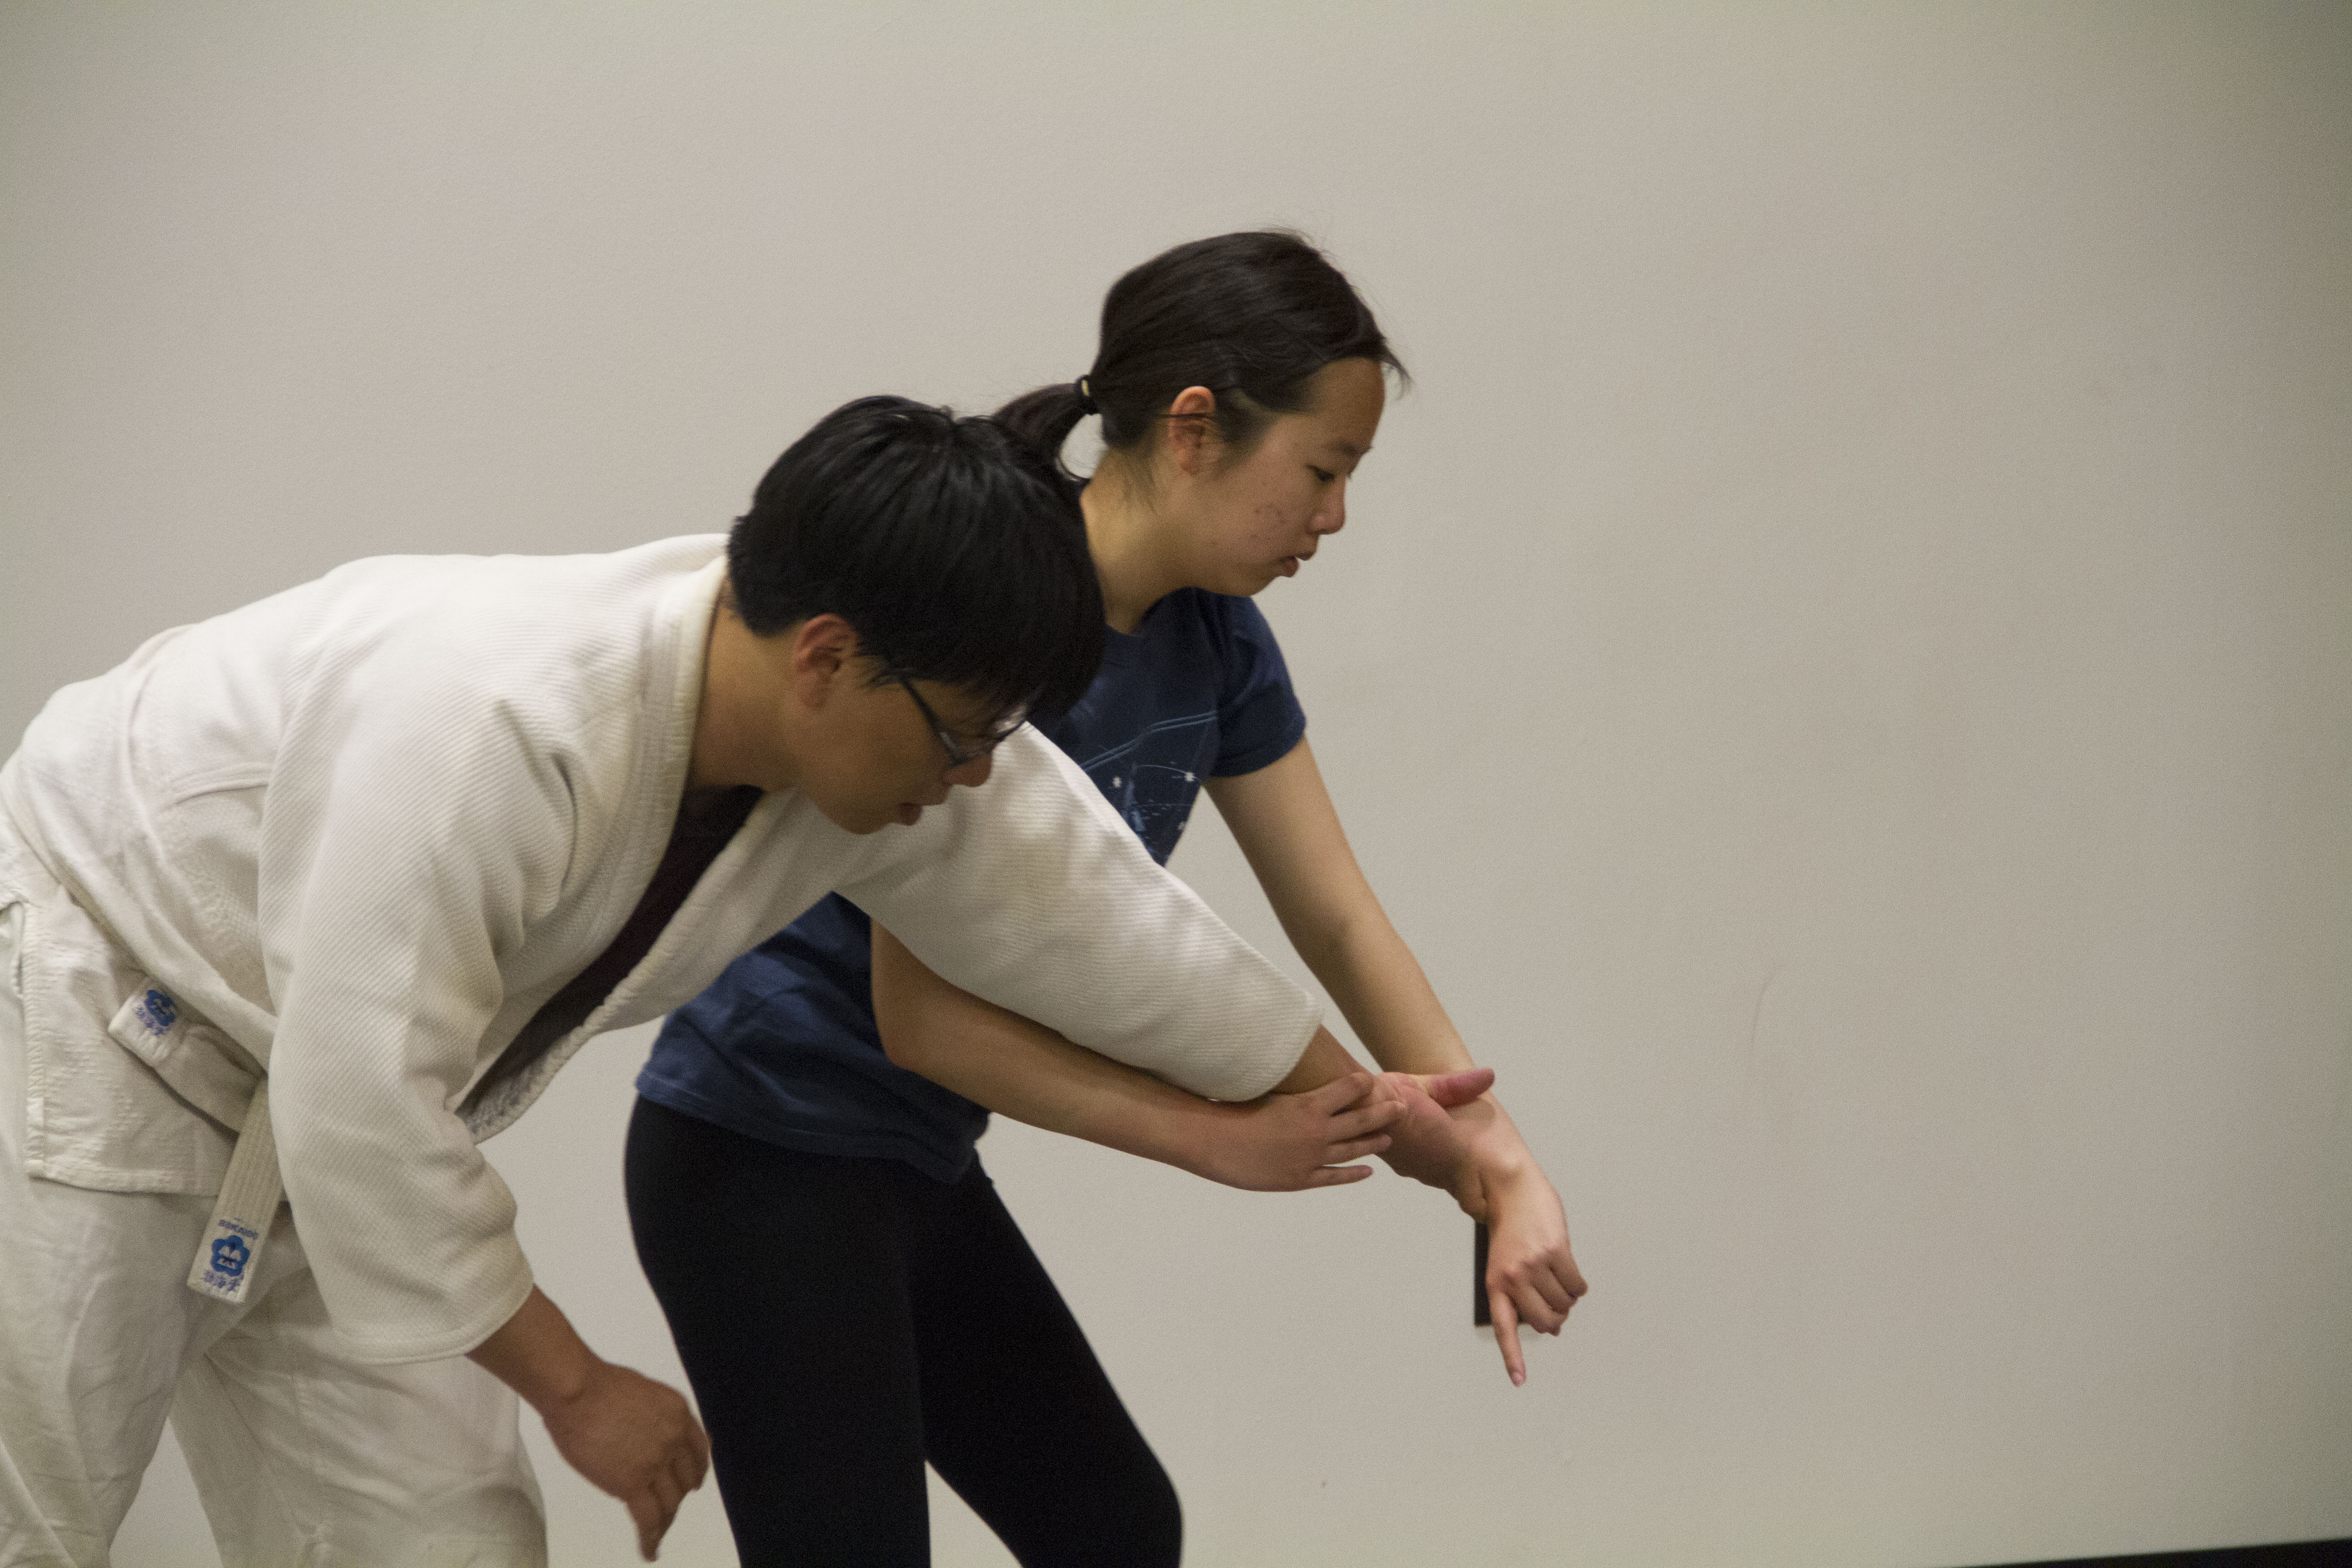 UT Aikido member Laura Chang practices a manuever.